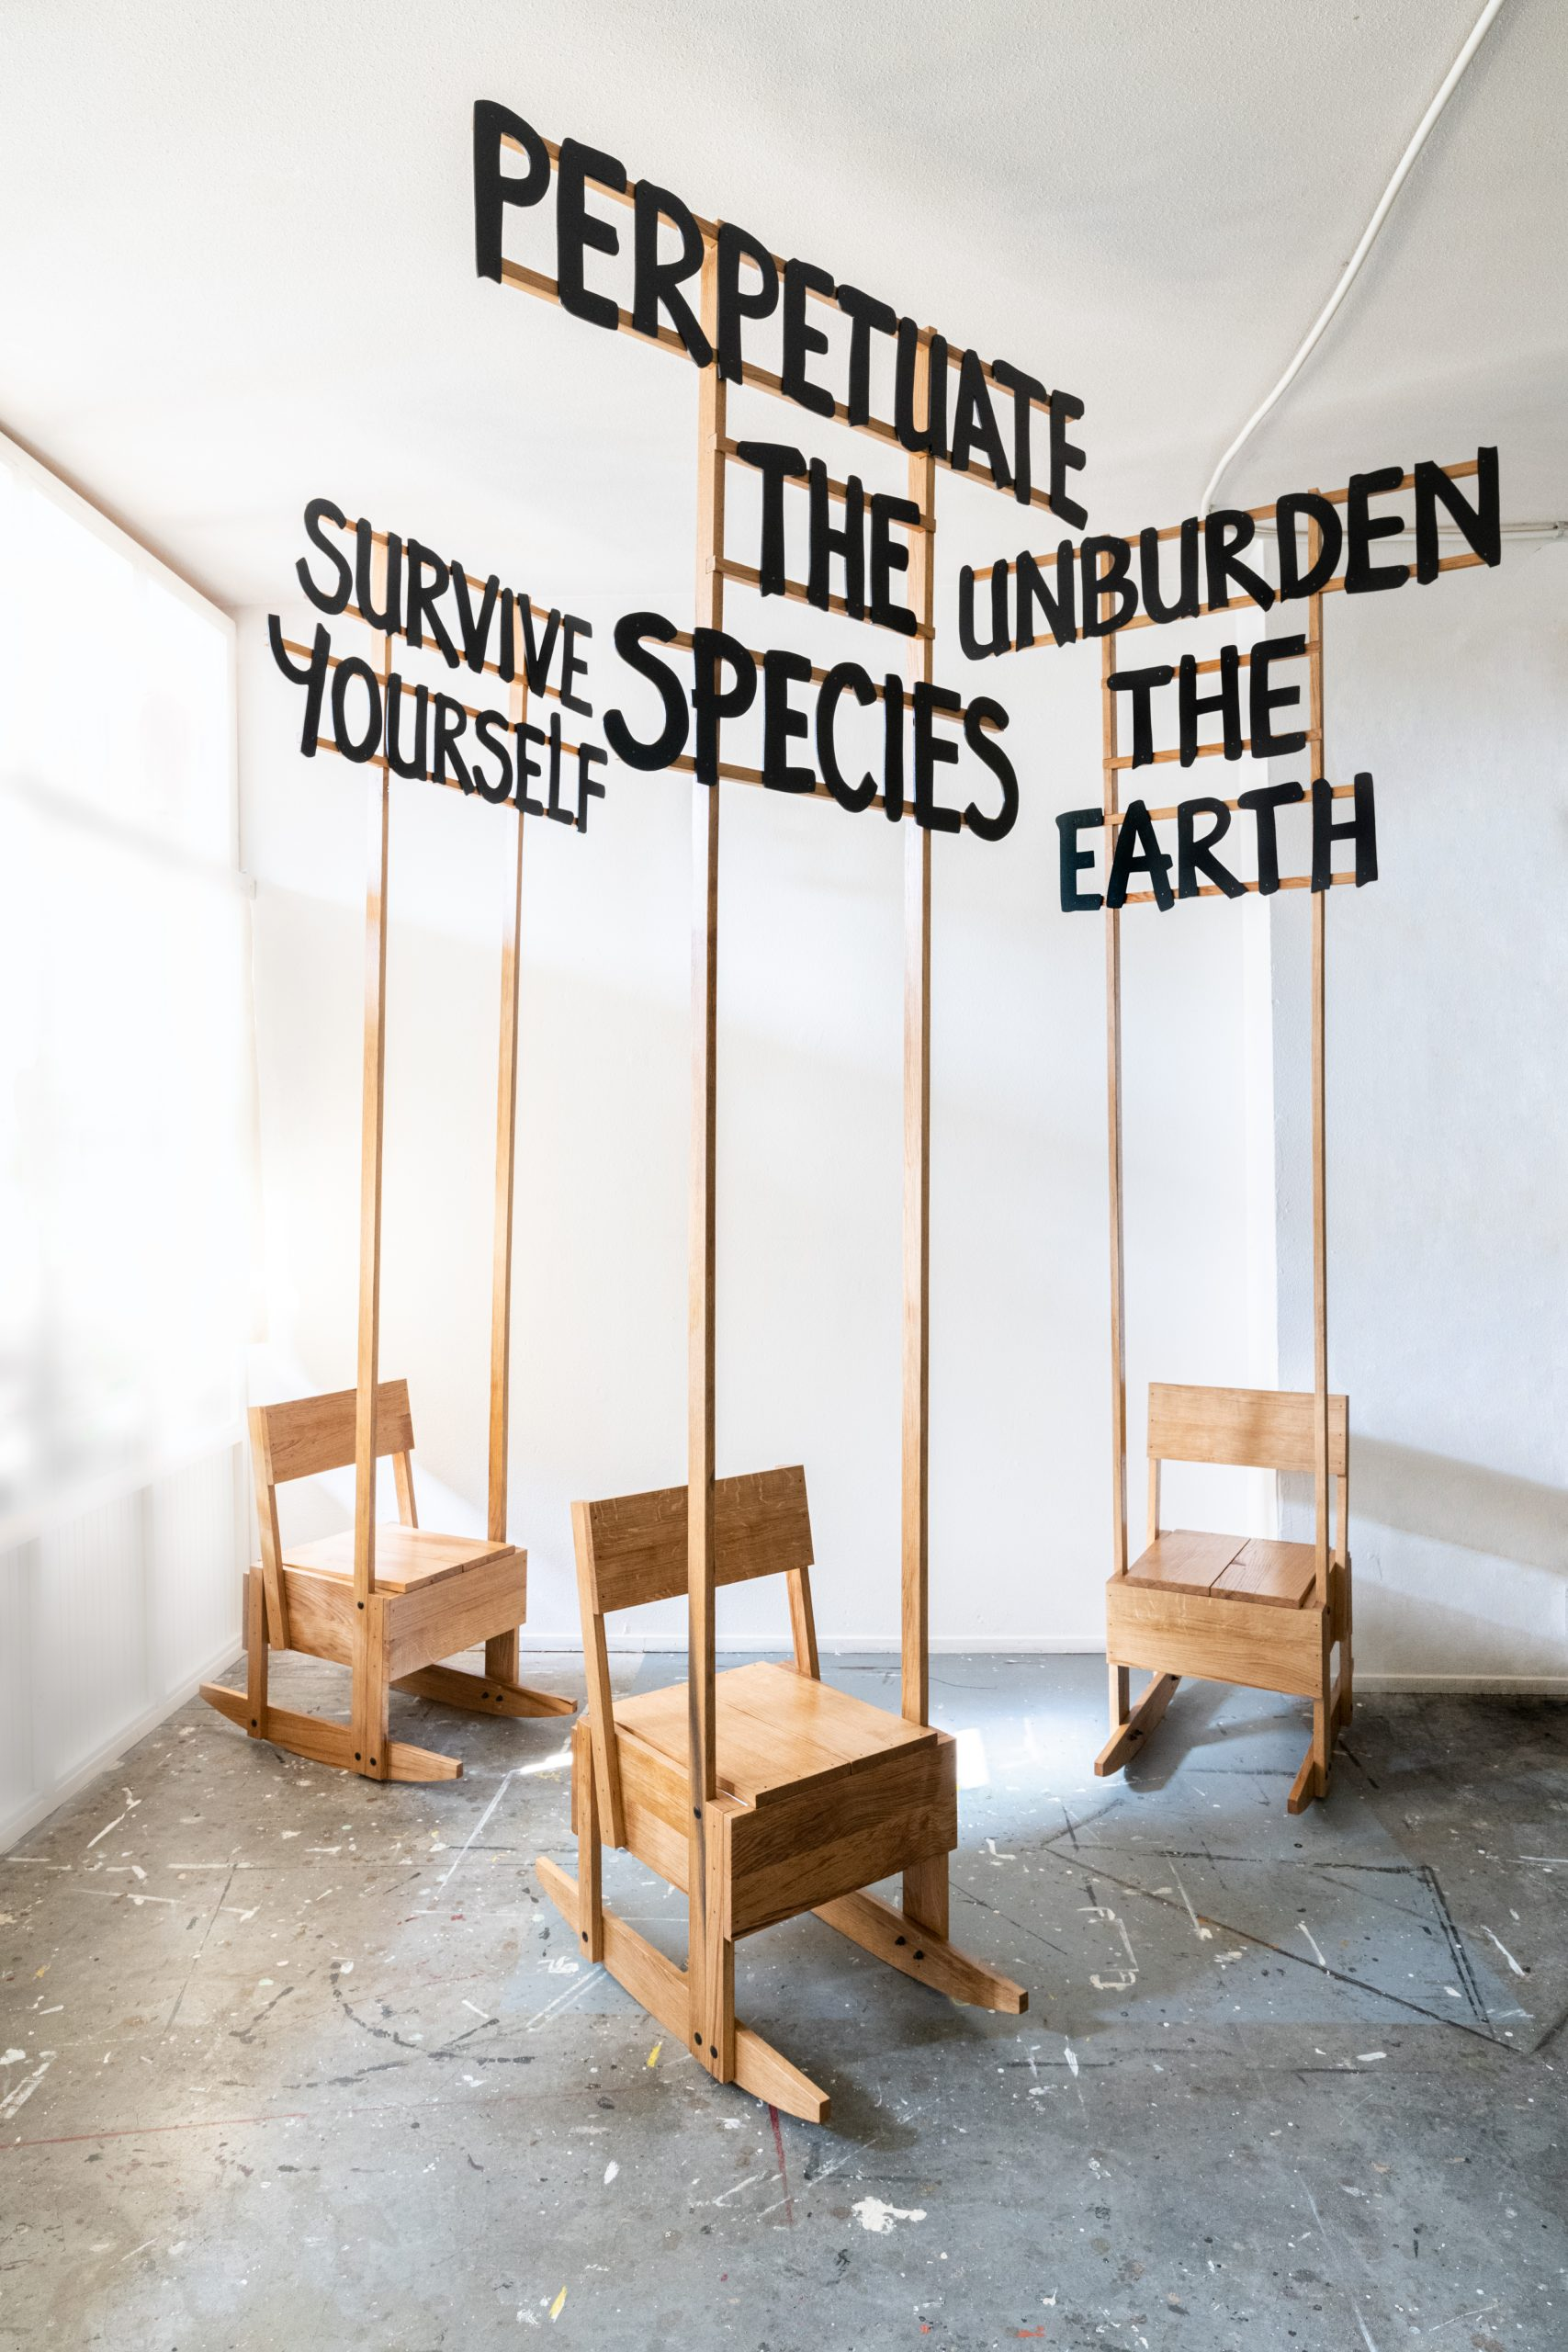 Birgit Verwer - Viriditas (SURVIVE YOURSELF, PERPETUATE THE SPECIES, UNBURDEN THE EARTH), 2021, rocking chairs made with wind sawn locally sourced oak , H300 x W125-140 x D92 cm per chair